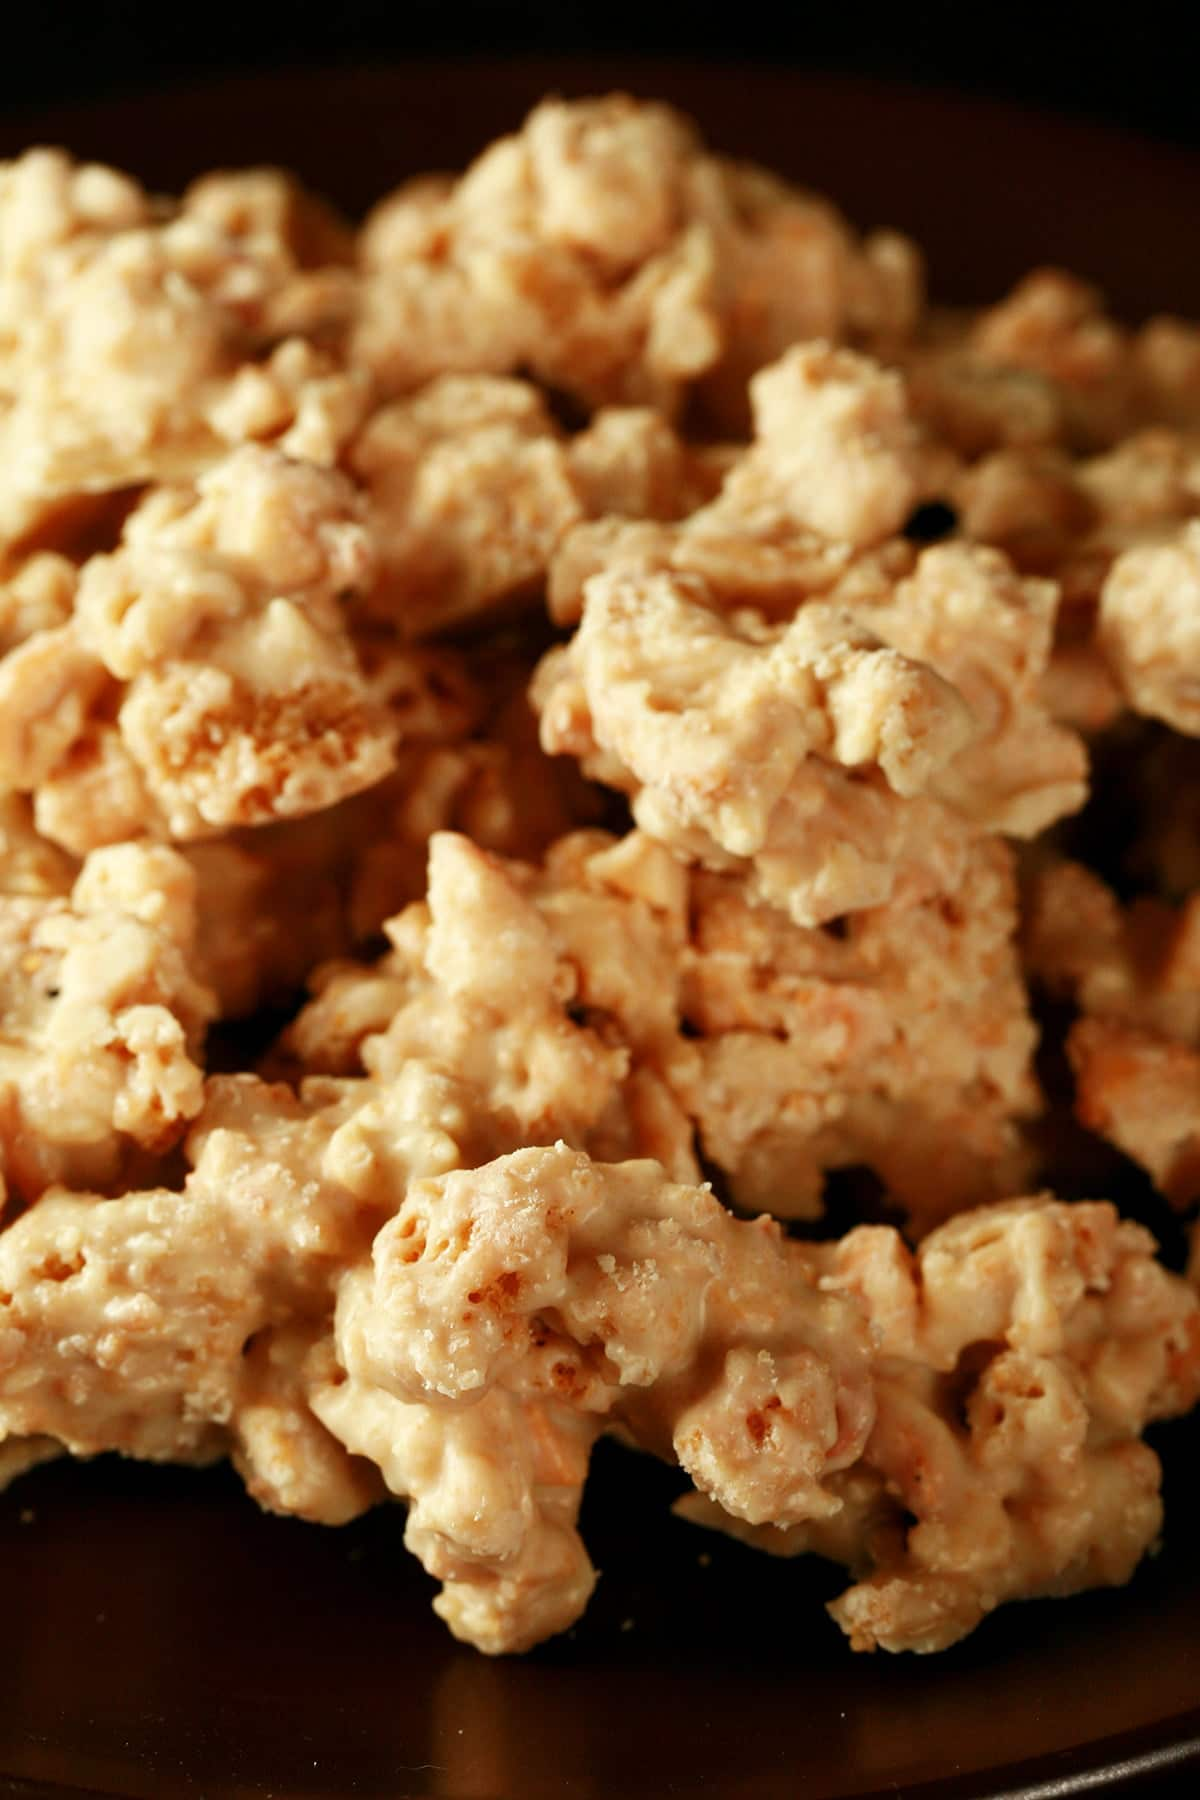 Close up view of a bowl of candy made from clusters of cashews, graham grackers, and white chocolate.